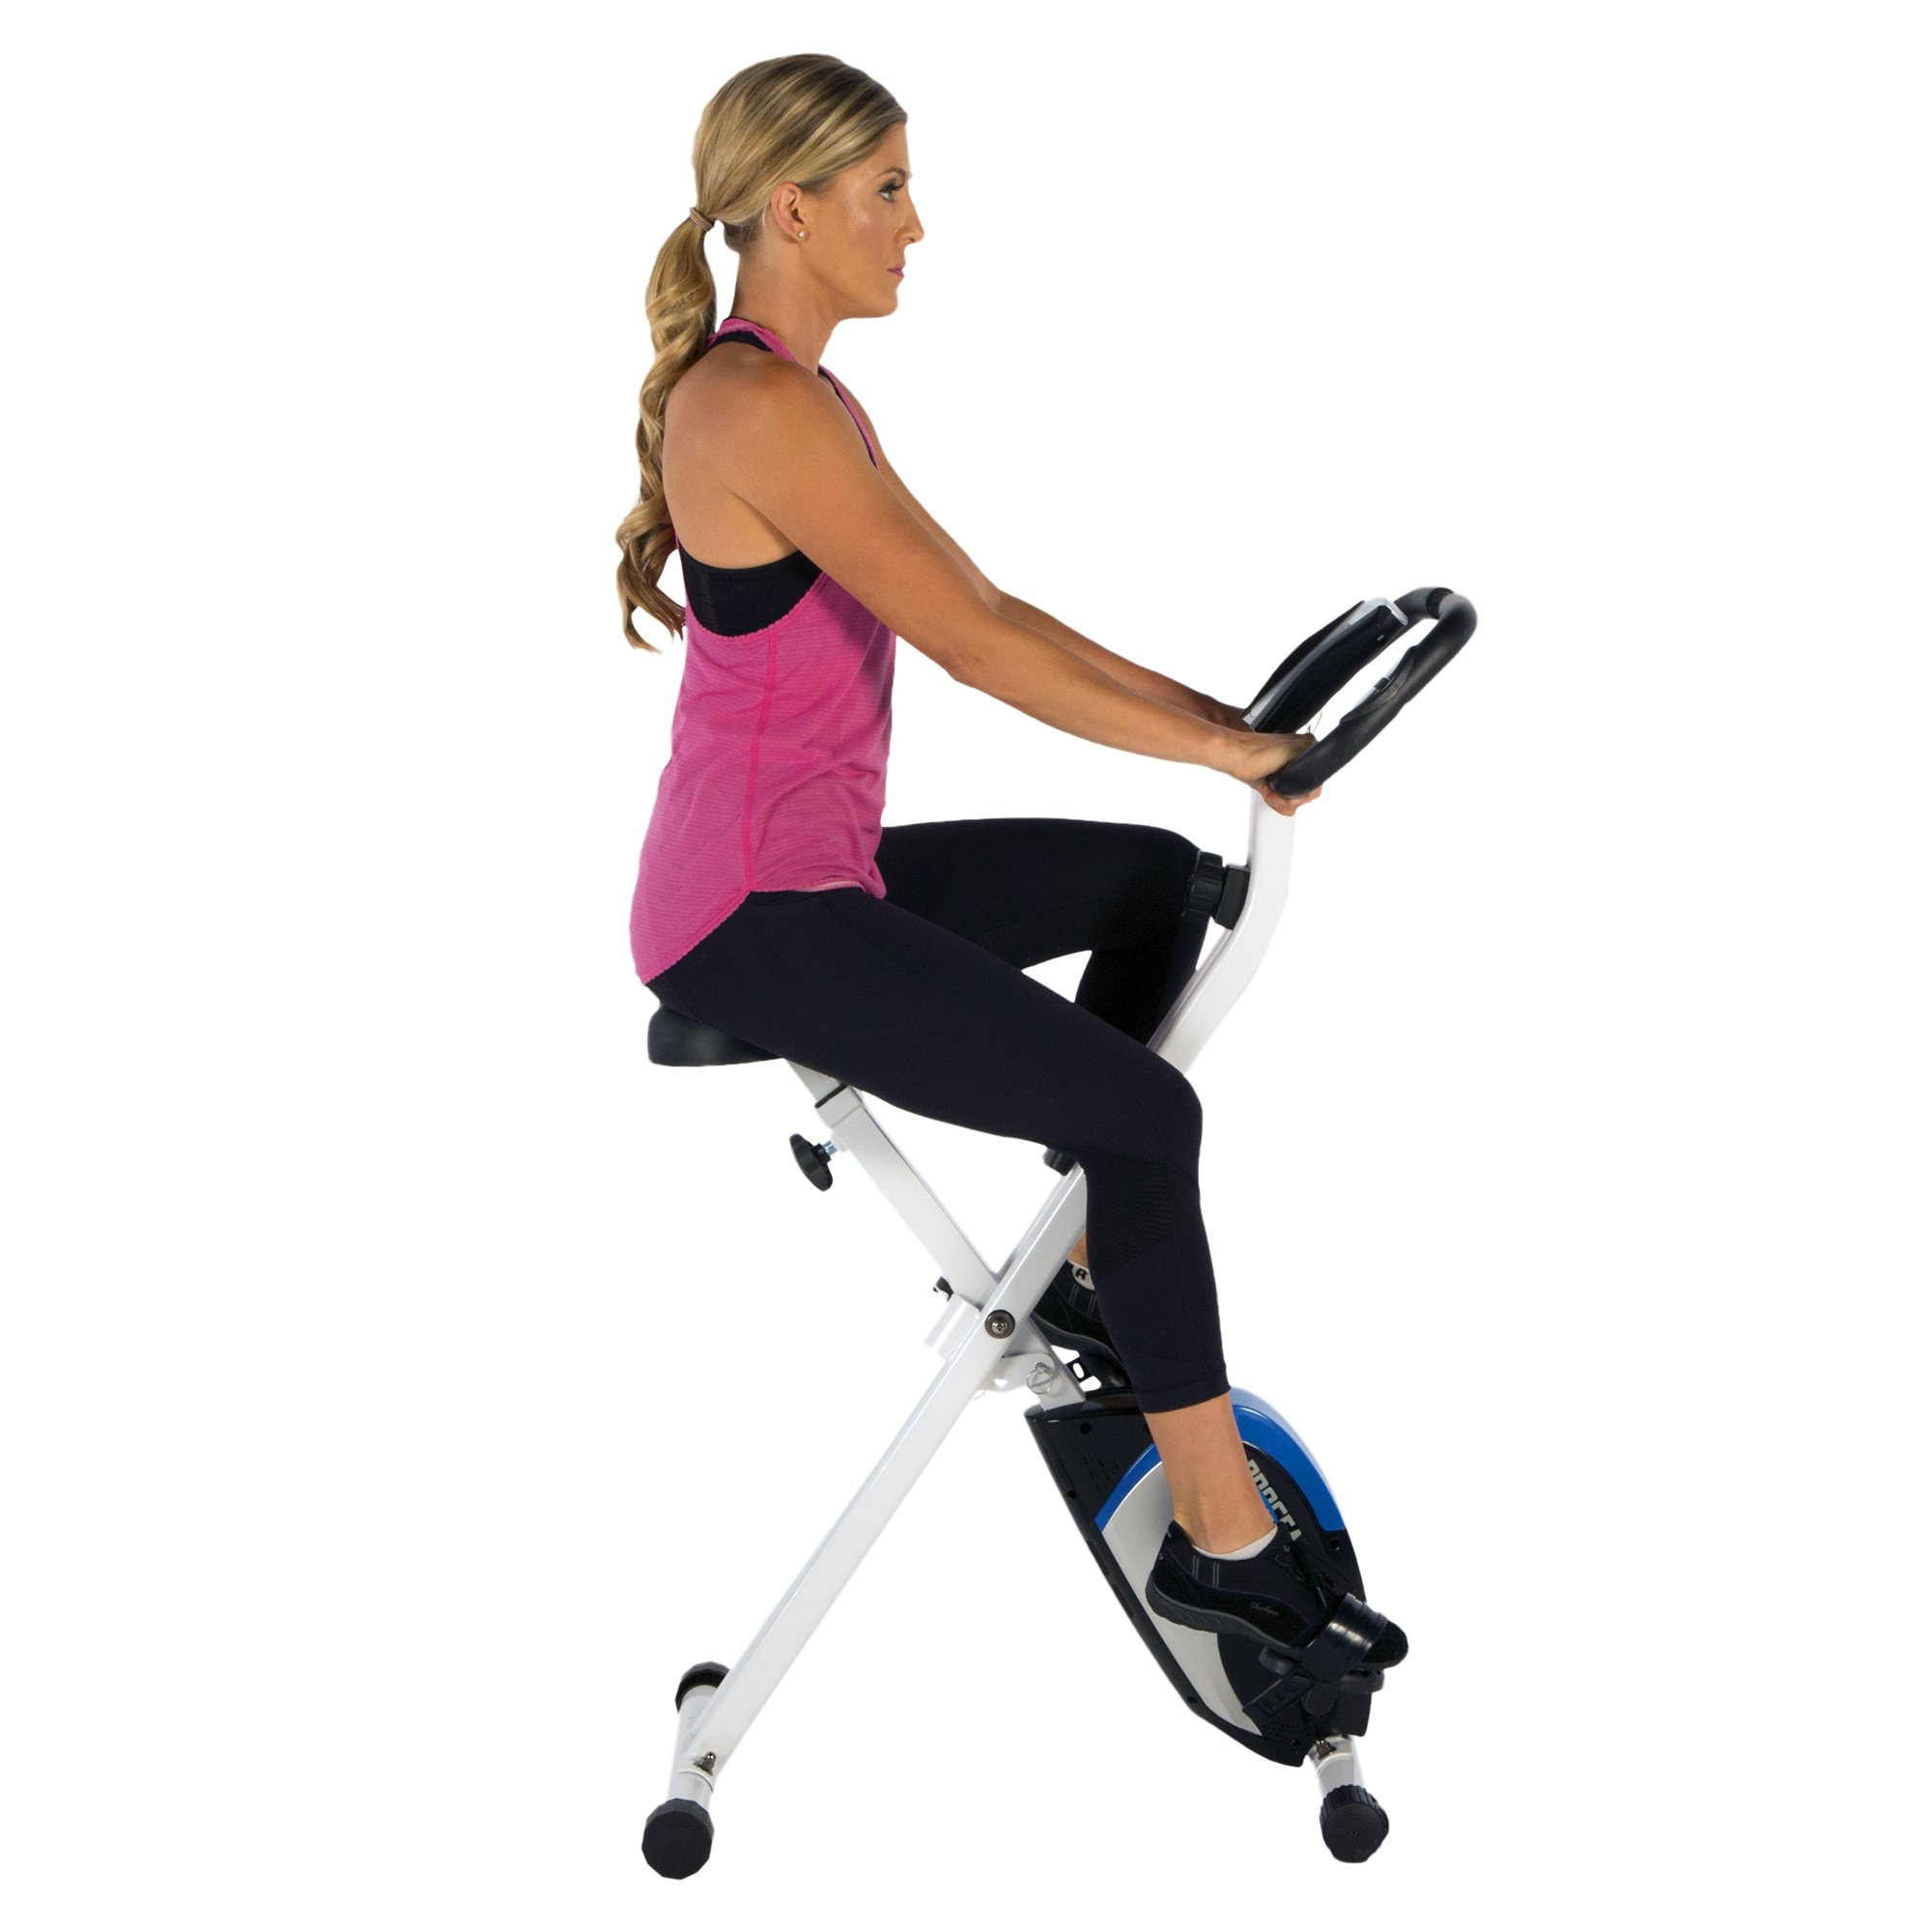 ProGear 225 Folding Magnetic Upright Exercise Bike with Heart Pulse by ProGear (Image #7)